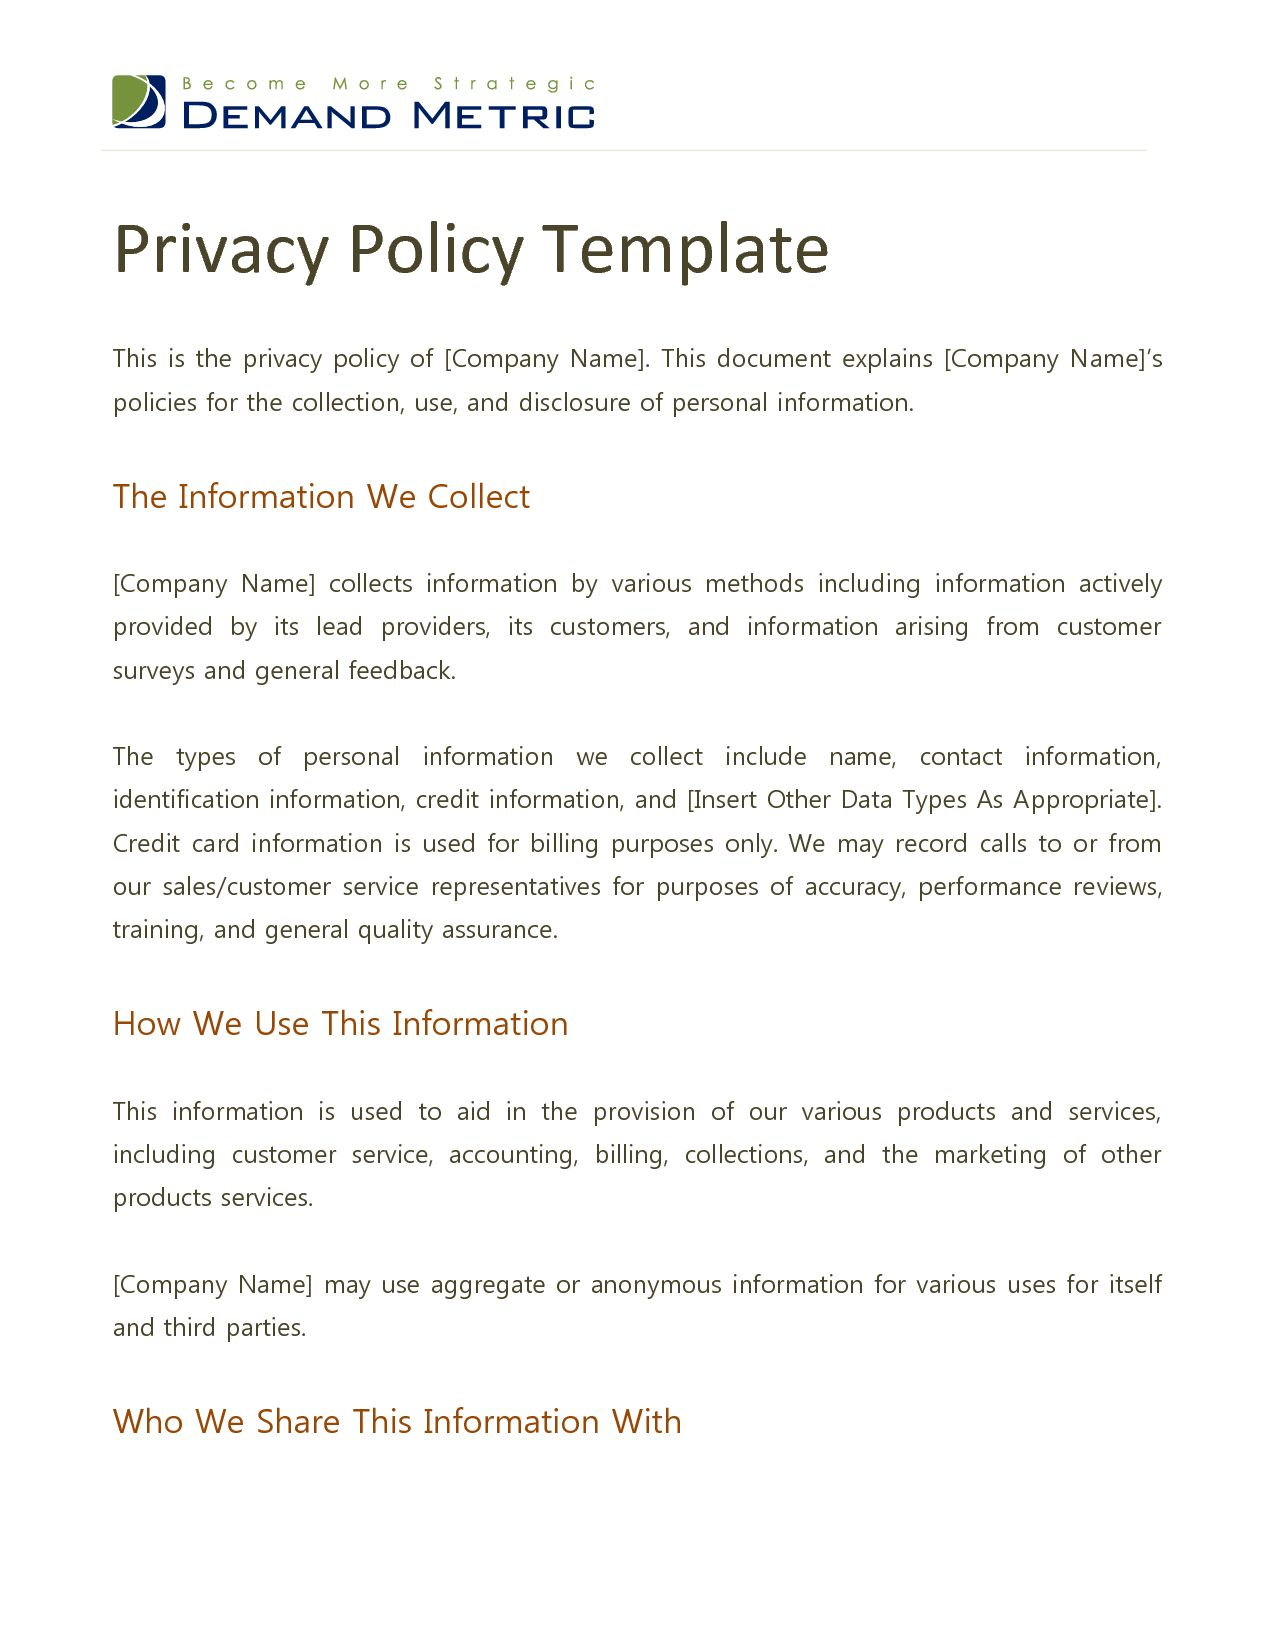 Best Photos Of Privacy Policy Template Website Privacy For Credit Card Privacy Policy Template Cume In 2020 Policy Template Website Template Business Plan Template